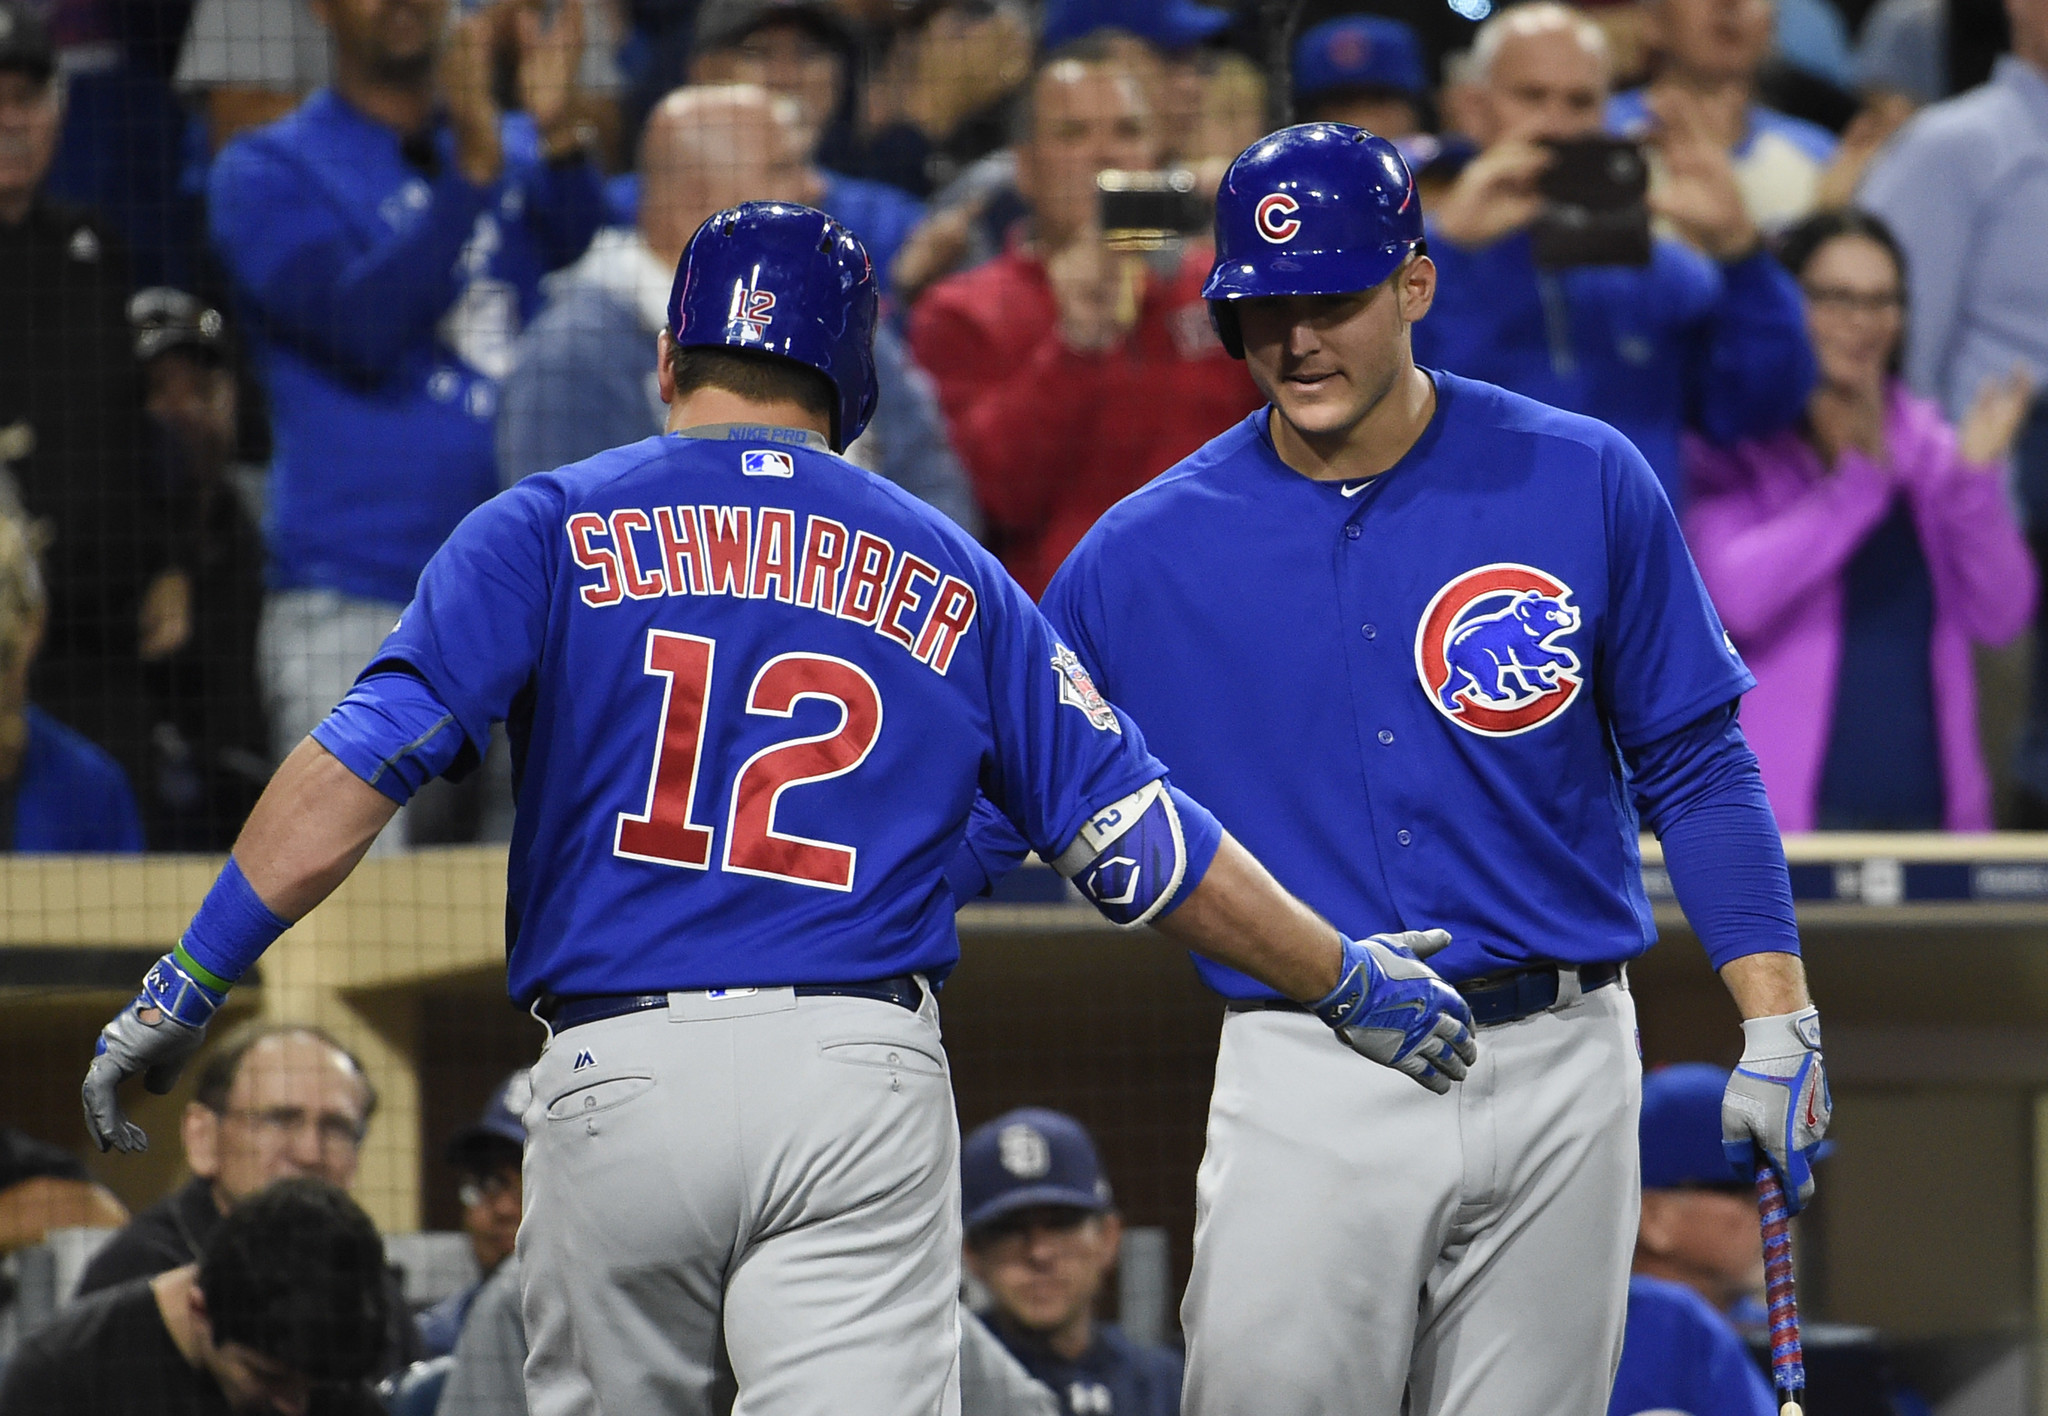 Ct-rizzo-schwarber-adjustment-cubs-notes-spt-0623-20170622